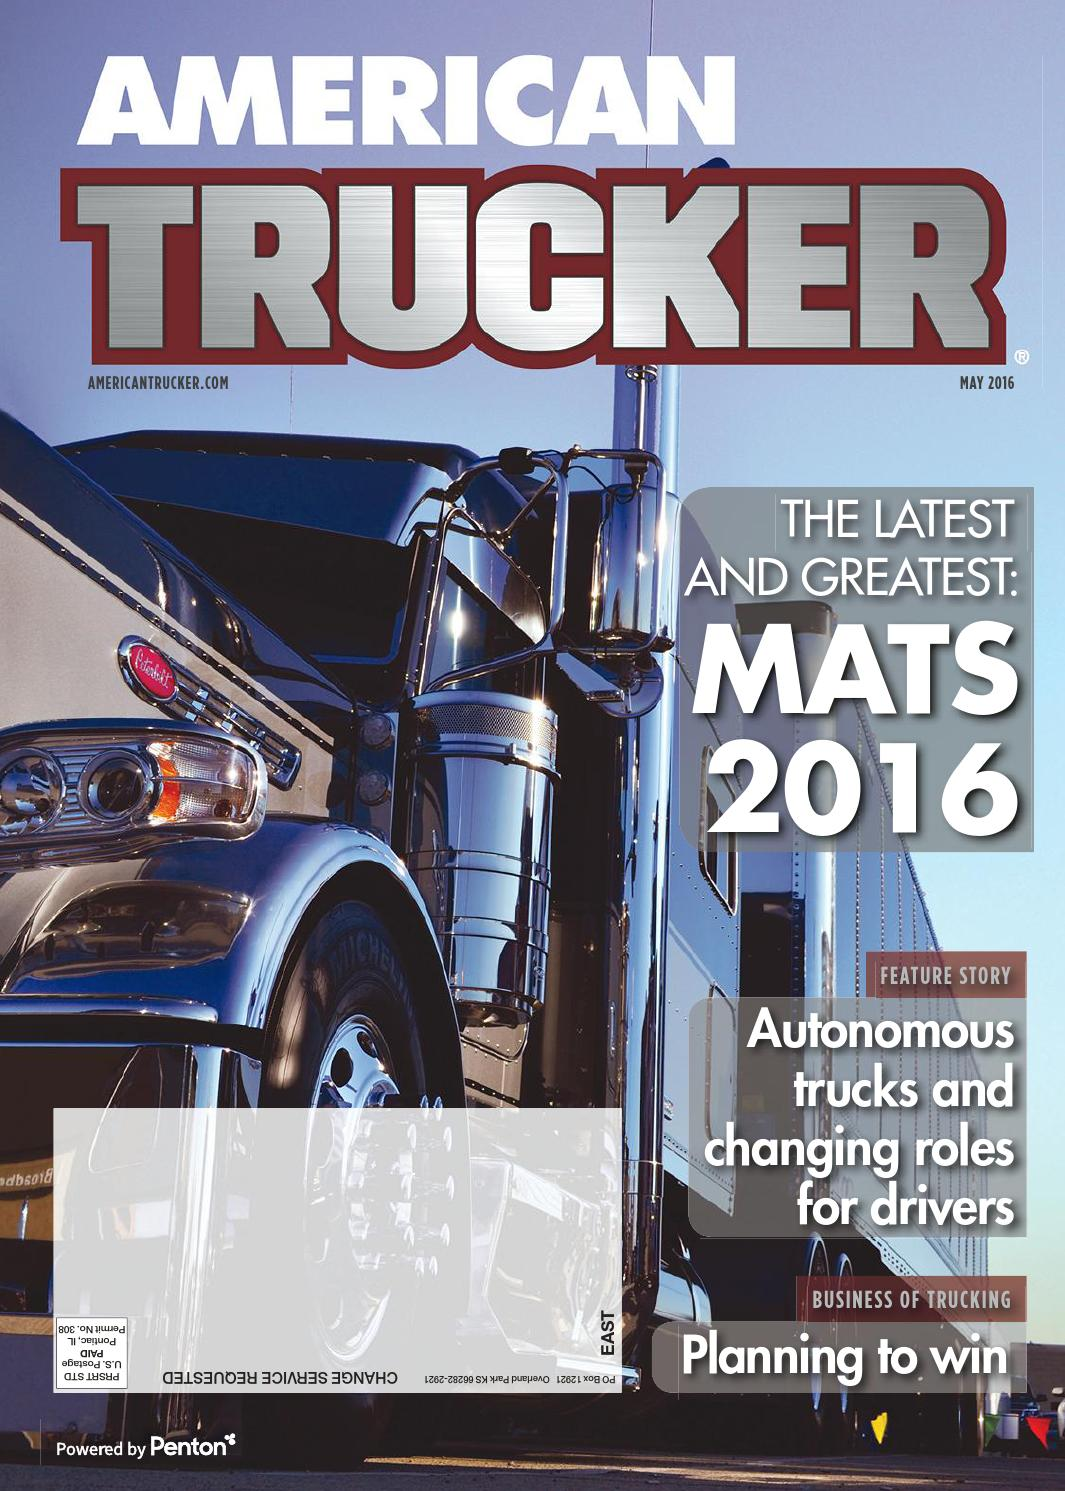 american trucker magazine - photo #21